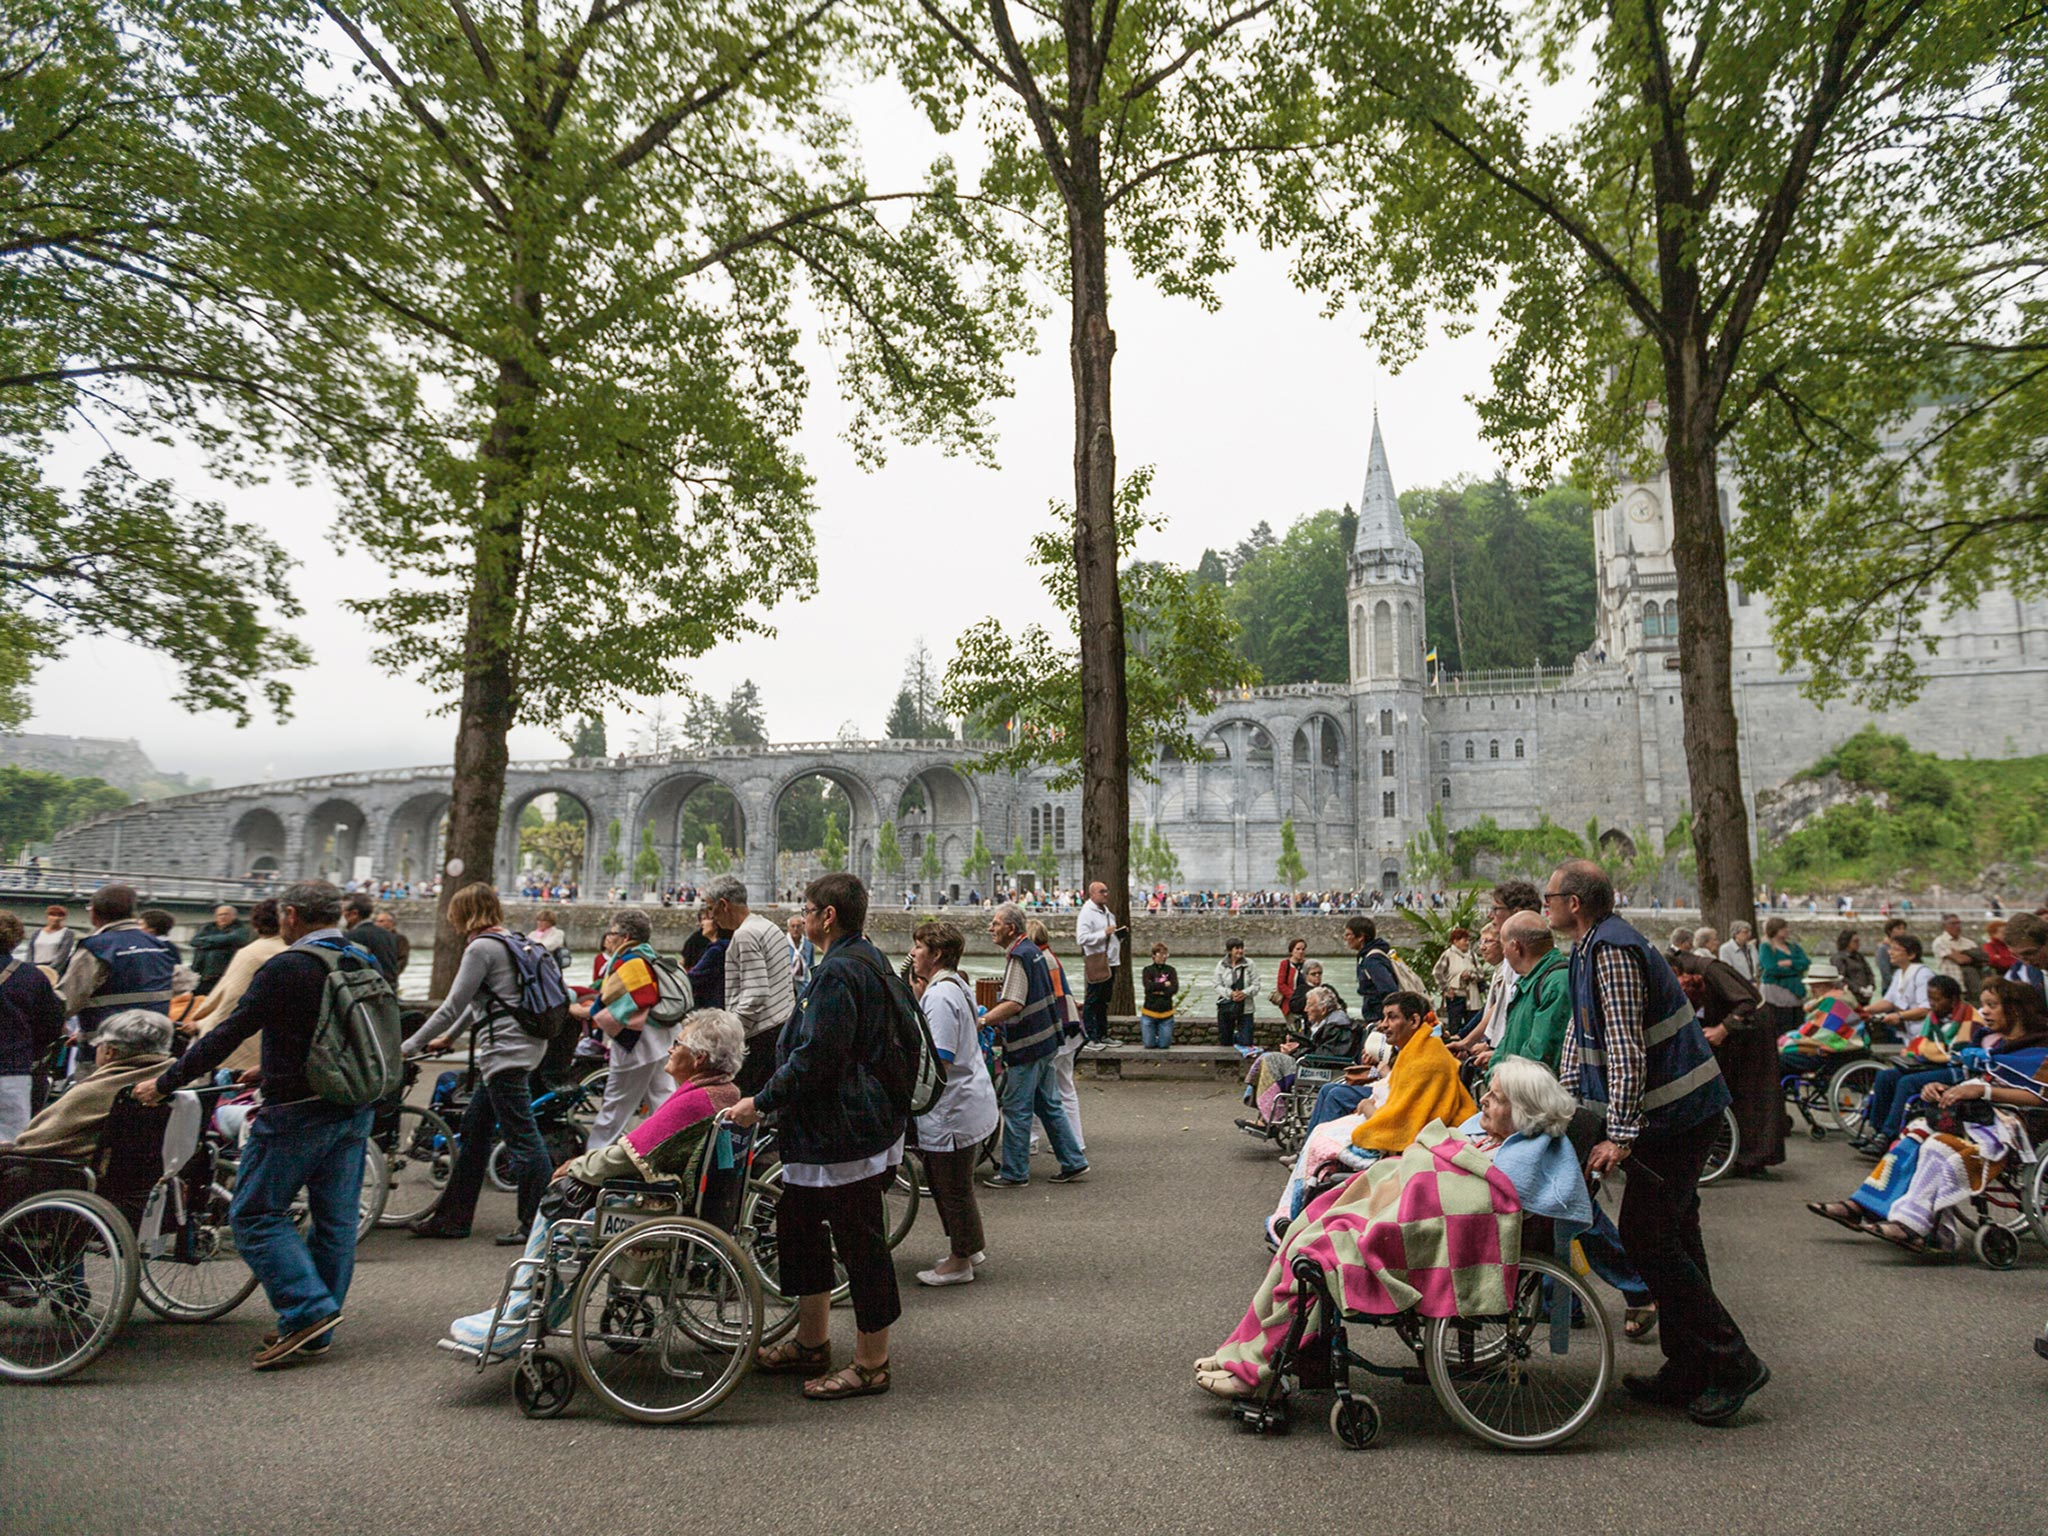 In Lourdes, a small town in France with an outsize reputation for miracles and Marian signs, volunteers push the wheelchairs of terminally or chronically ill pilgrims. Some 80,000 sick or disabled devotees a year seek a cure at the shrine of Mary.